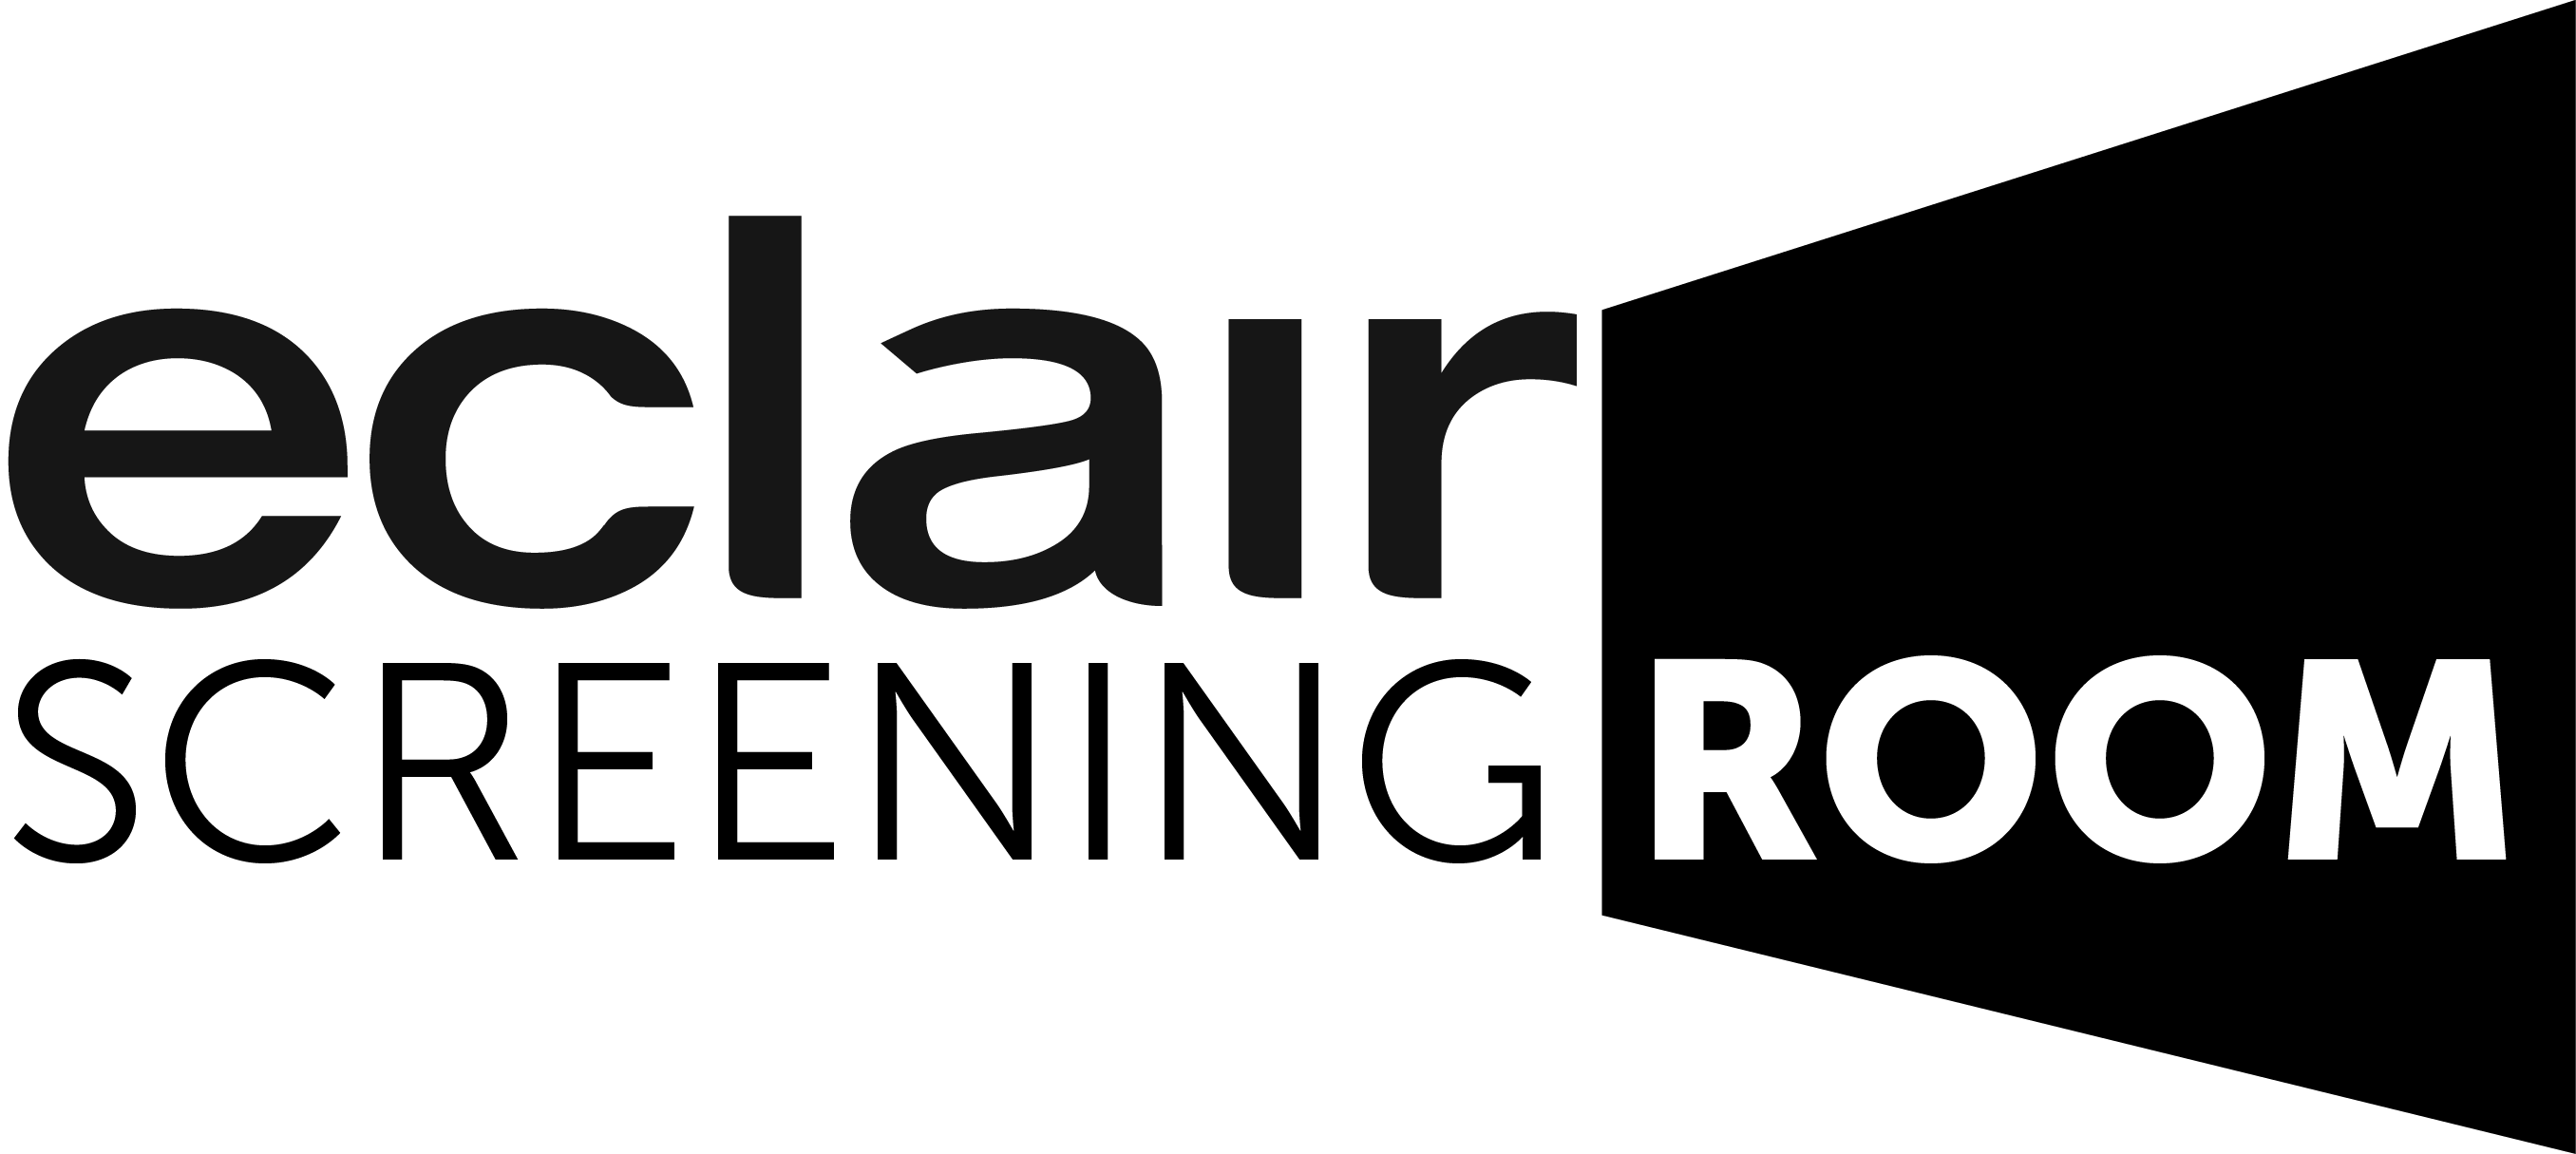 Screening Rooms in the UK